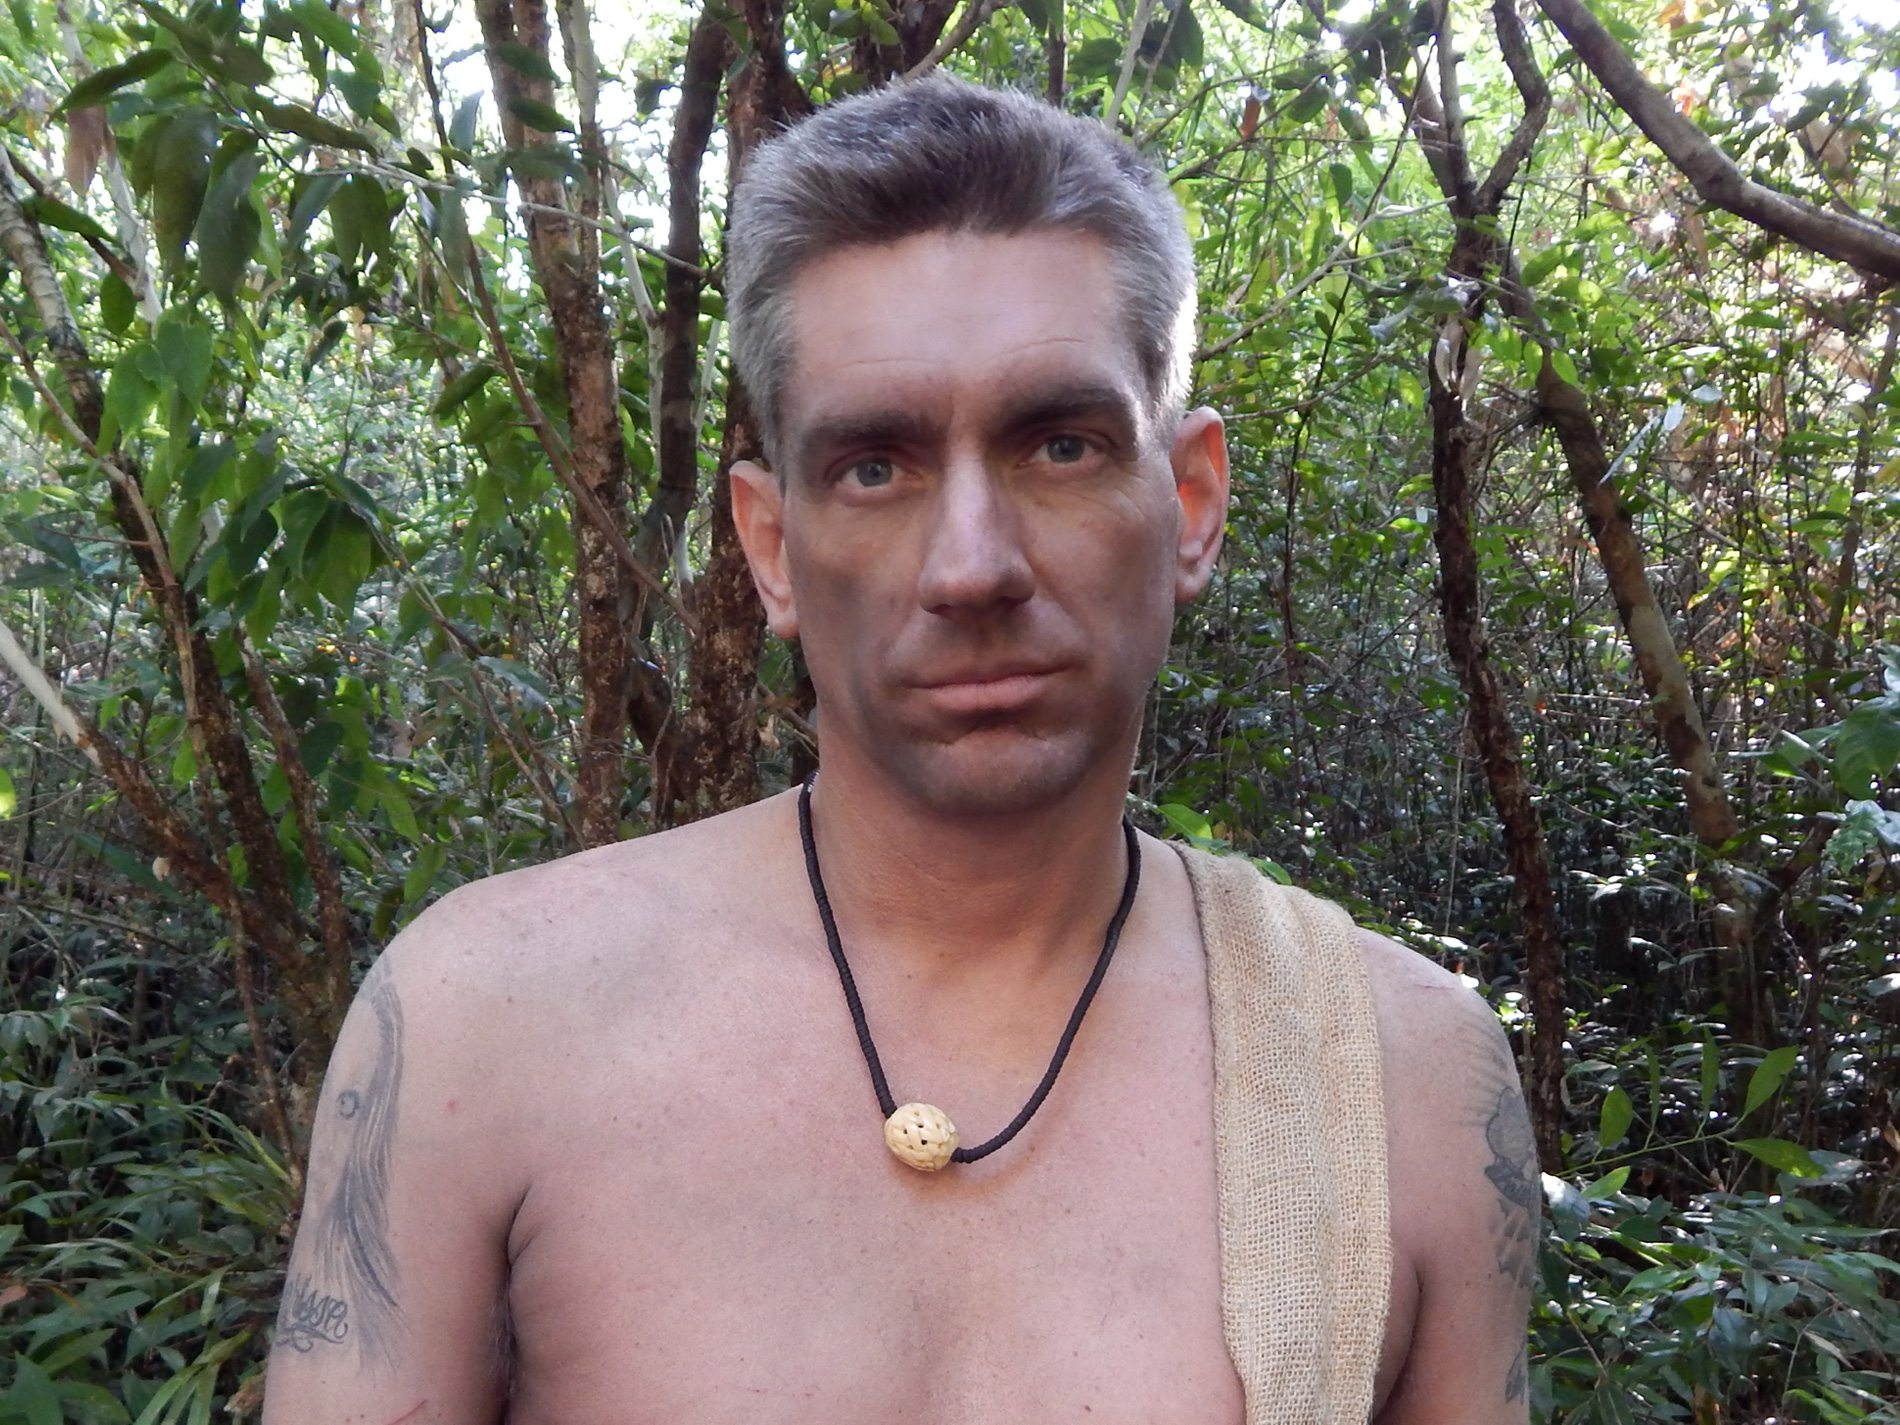 Naked and afraid season 3 frozen images 77